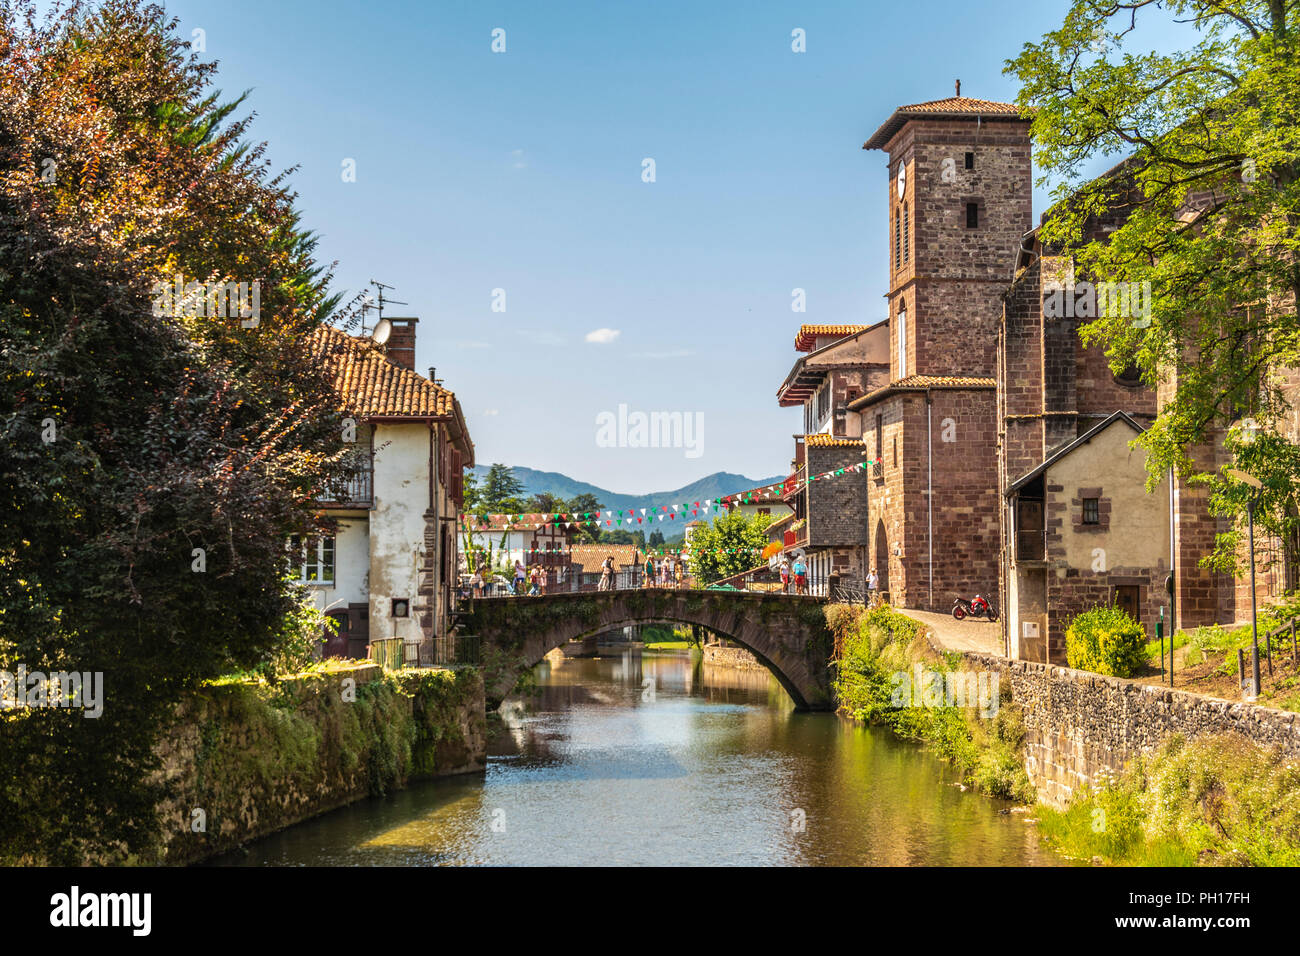 View of the river Nive on its way through the village of Saint Jean Pied de Port and in the background the Pyrenees. France. - Stock Image